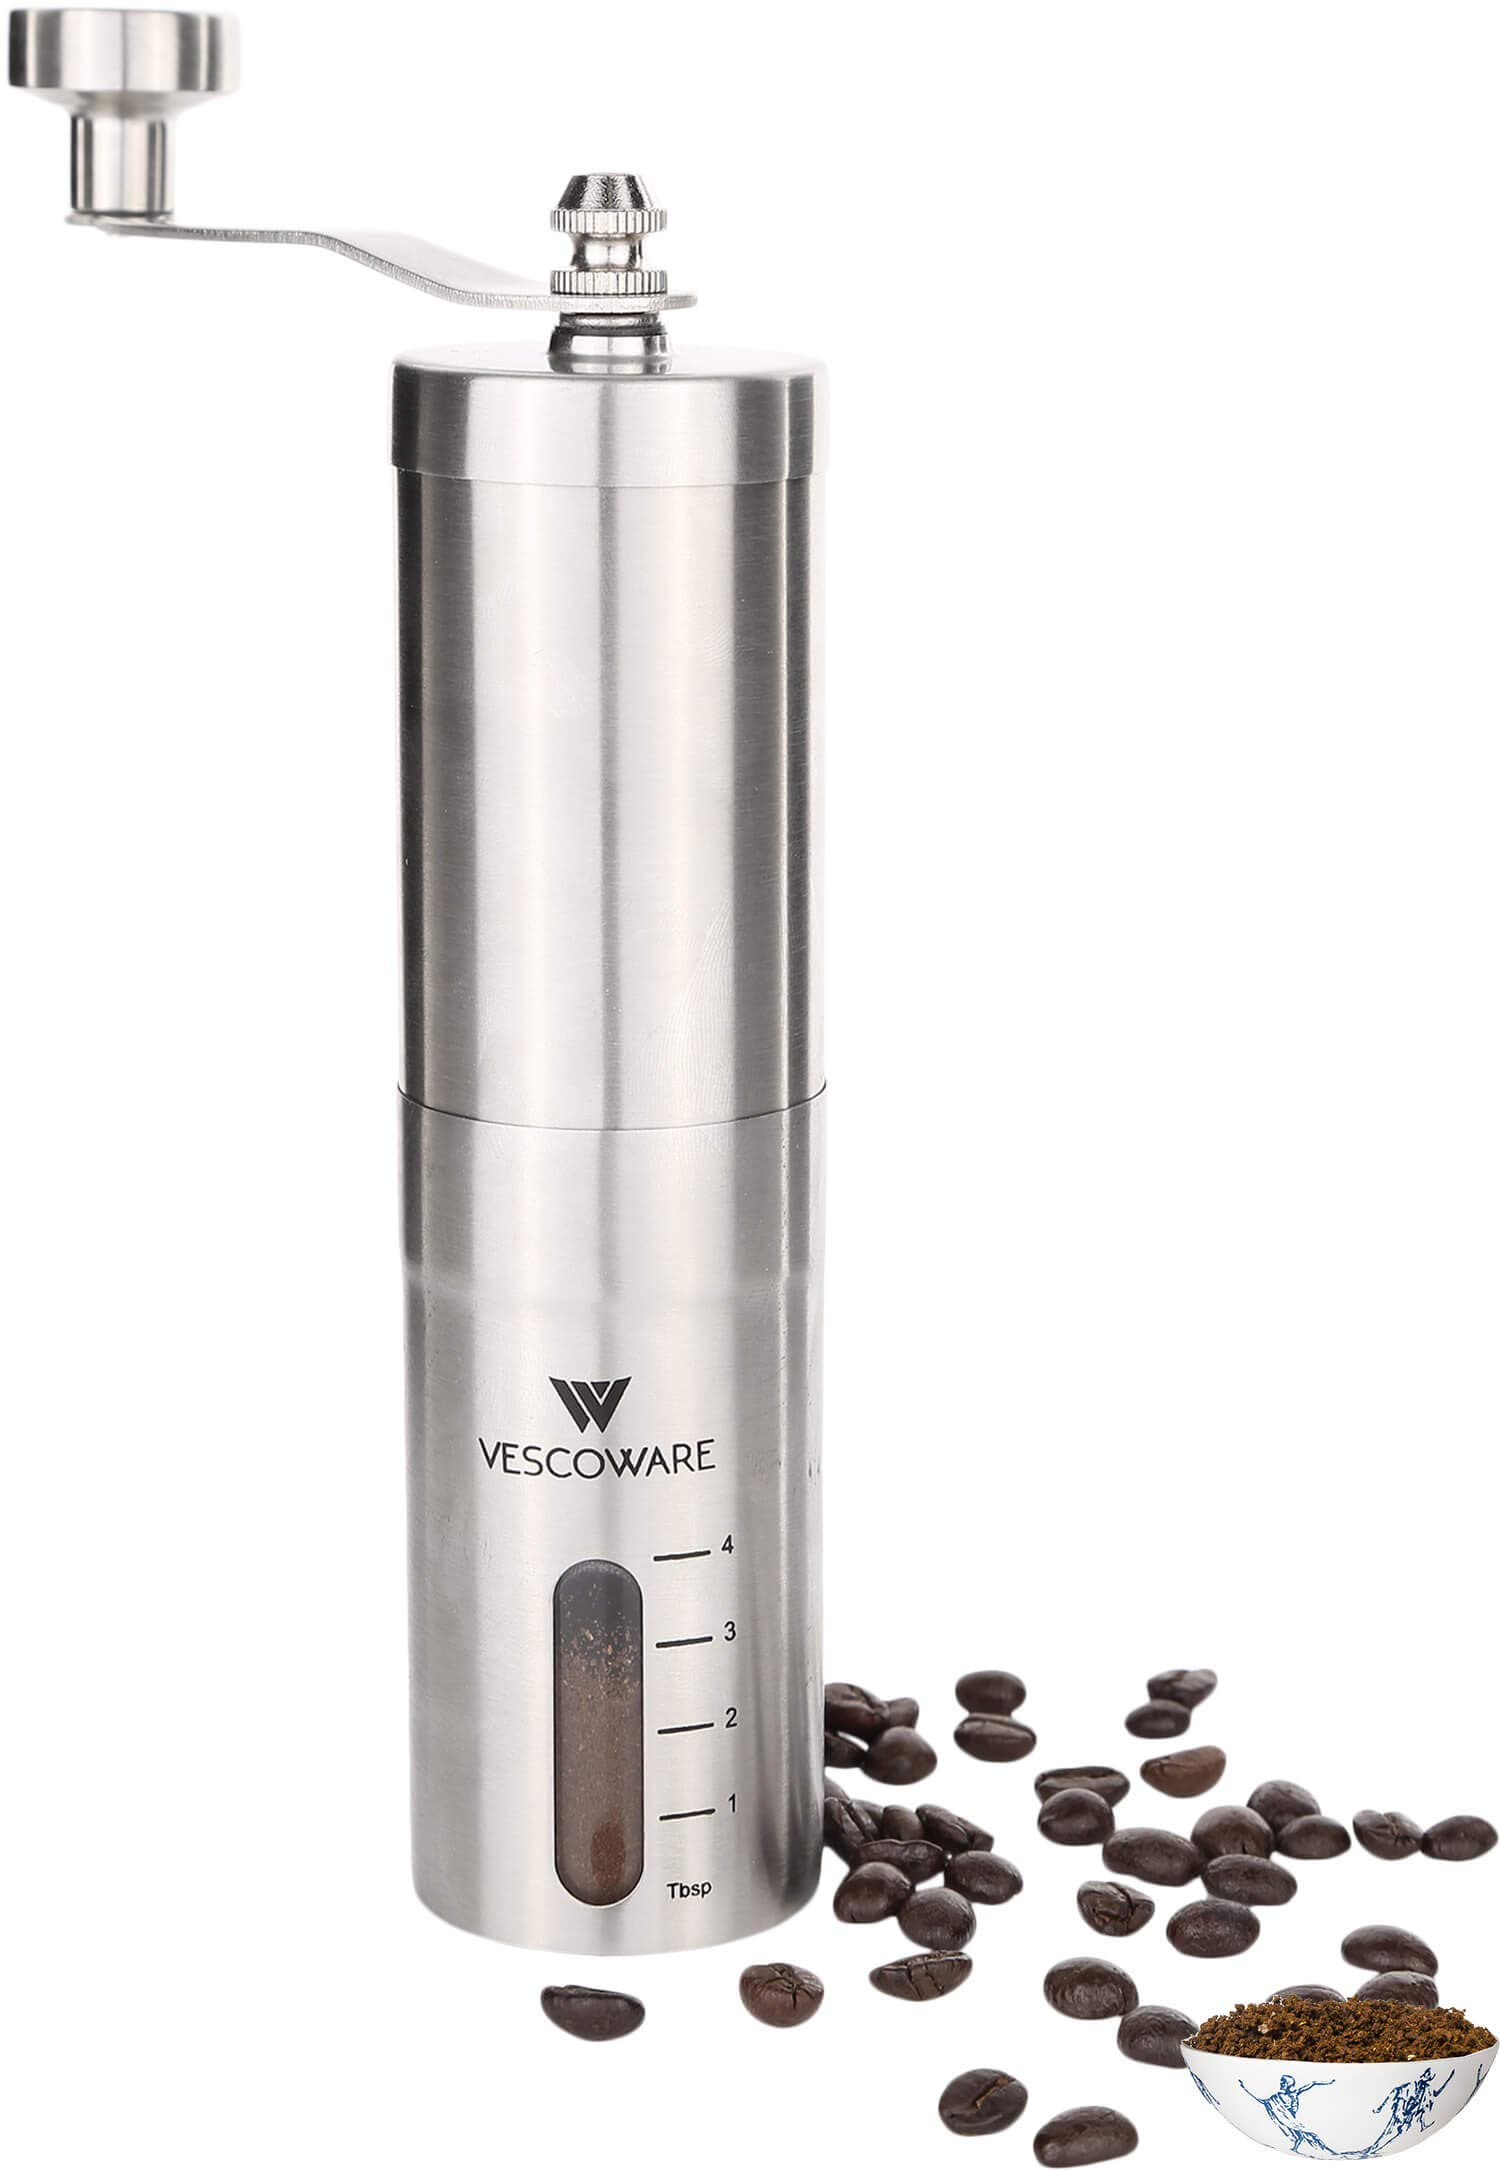 Manual Coffee Grinder with Conical Burr - Hand Bean Mill with Adjustable Settings for Espresso, French Press, Cold and Turkish Brew by Vescoware - Stainless Steel